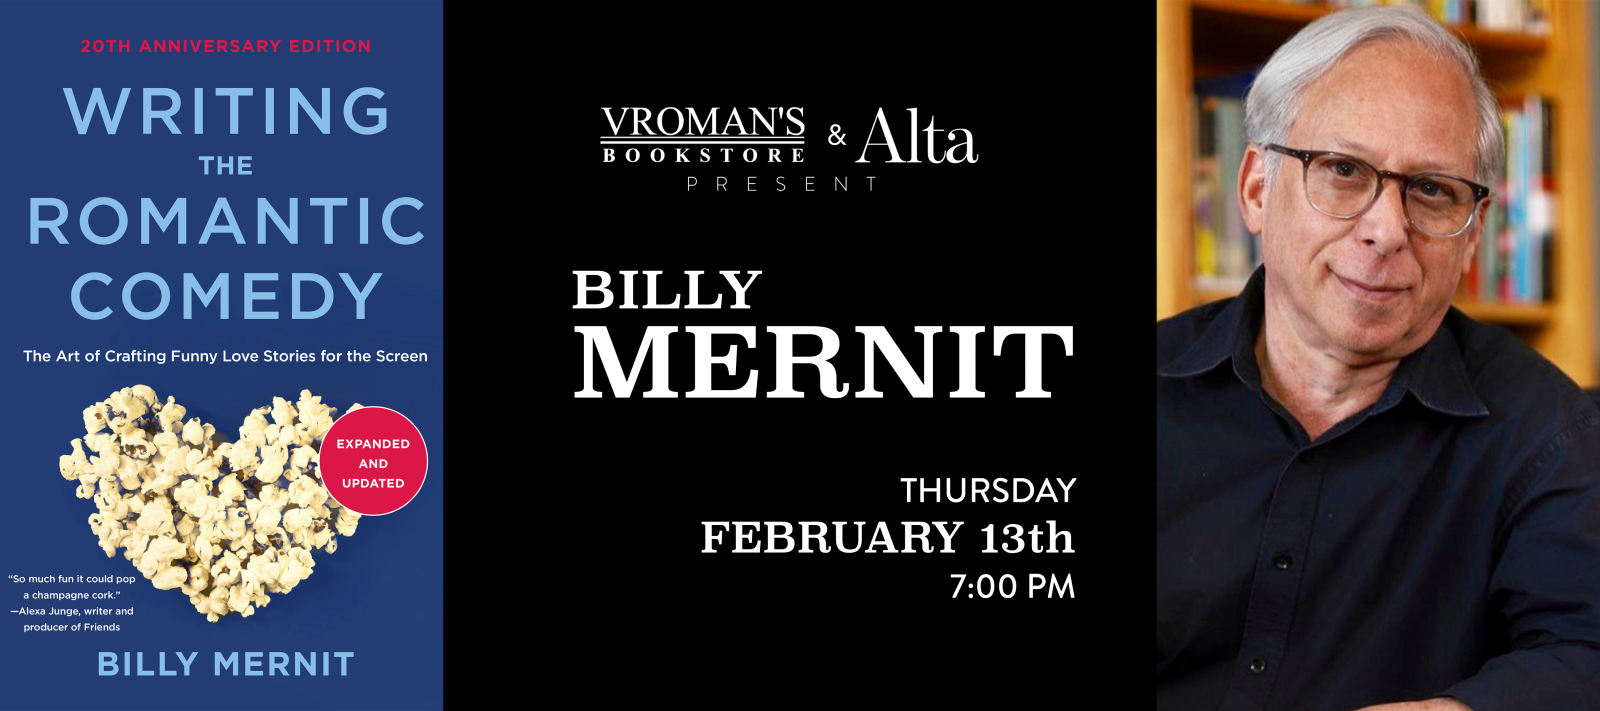 Billy Mernit book signing on Thursday February 13, at 7pm